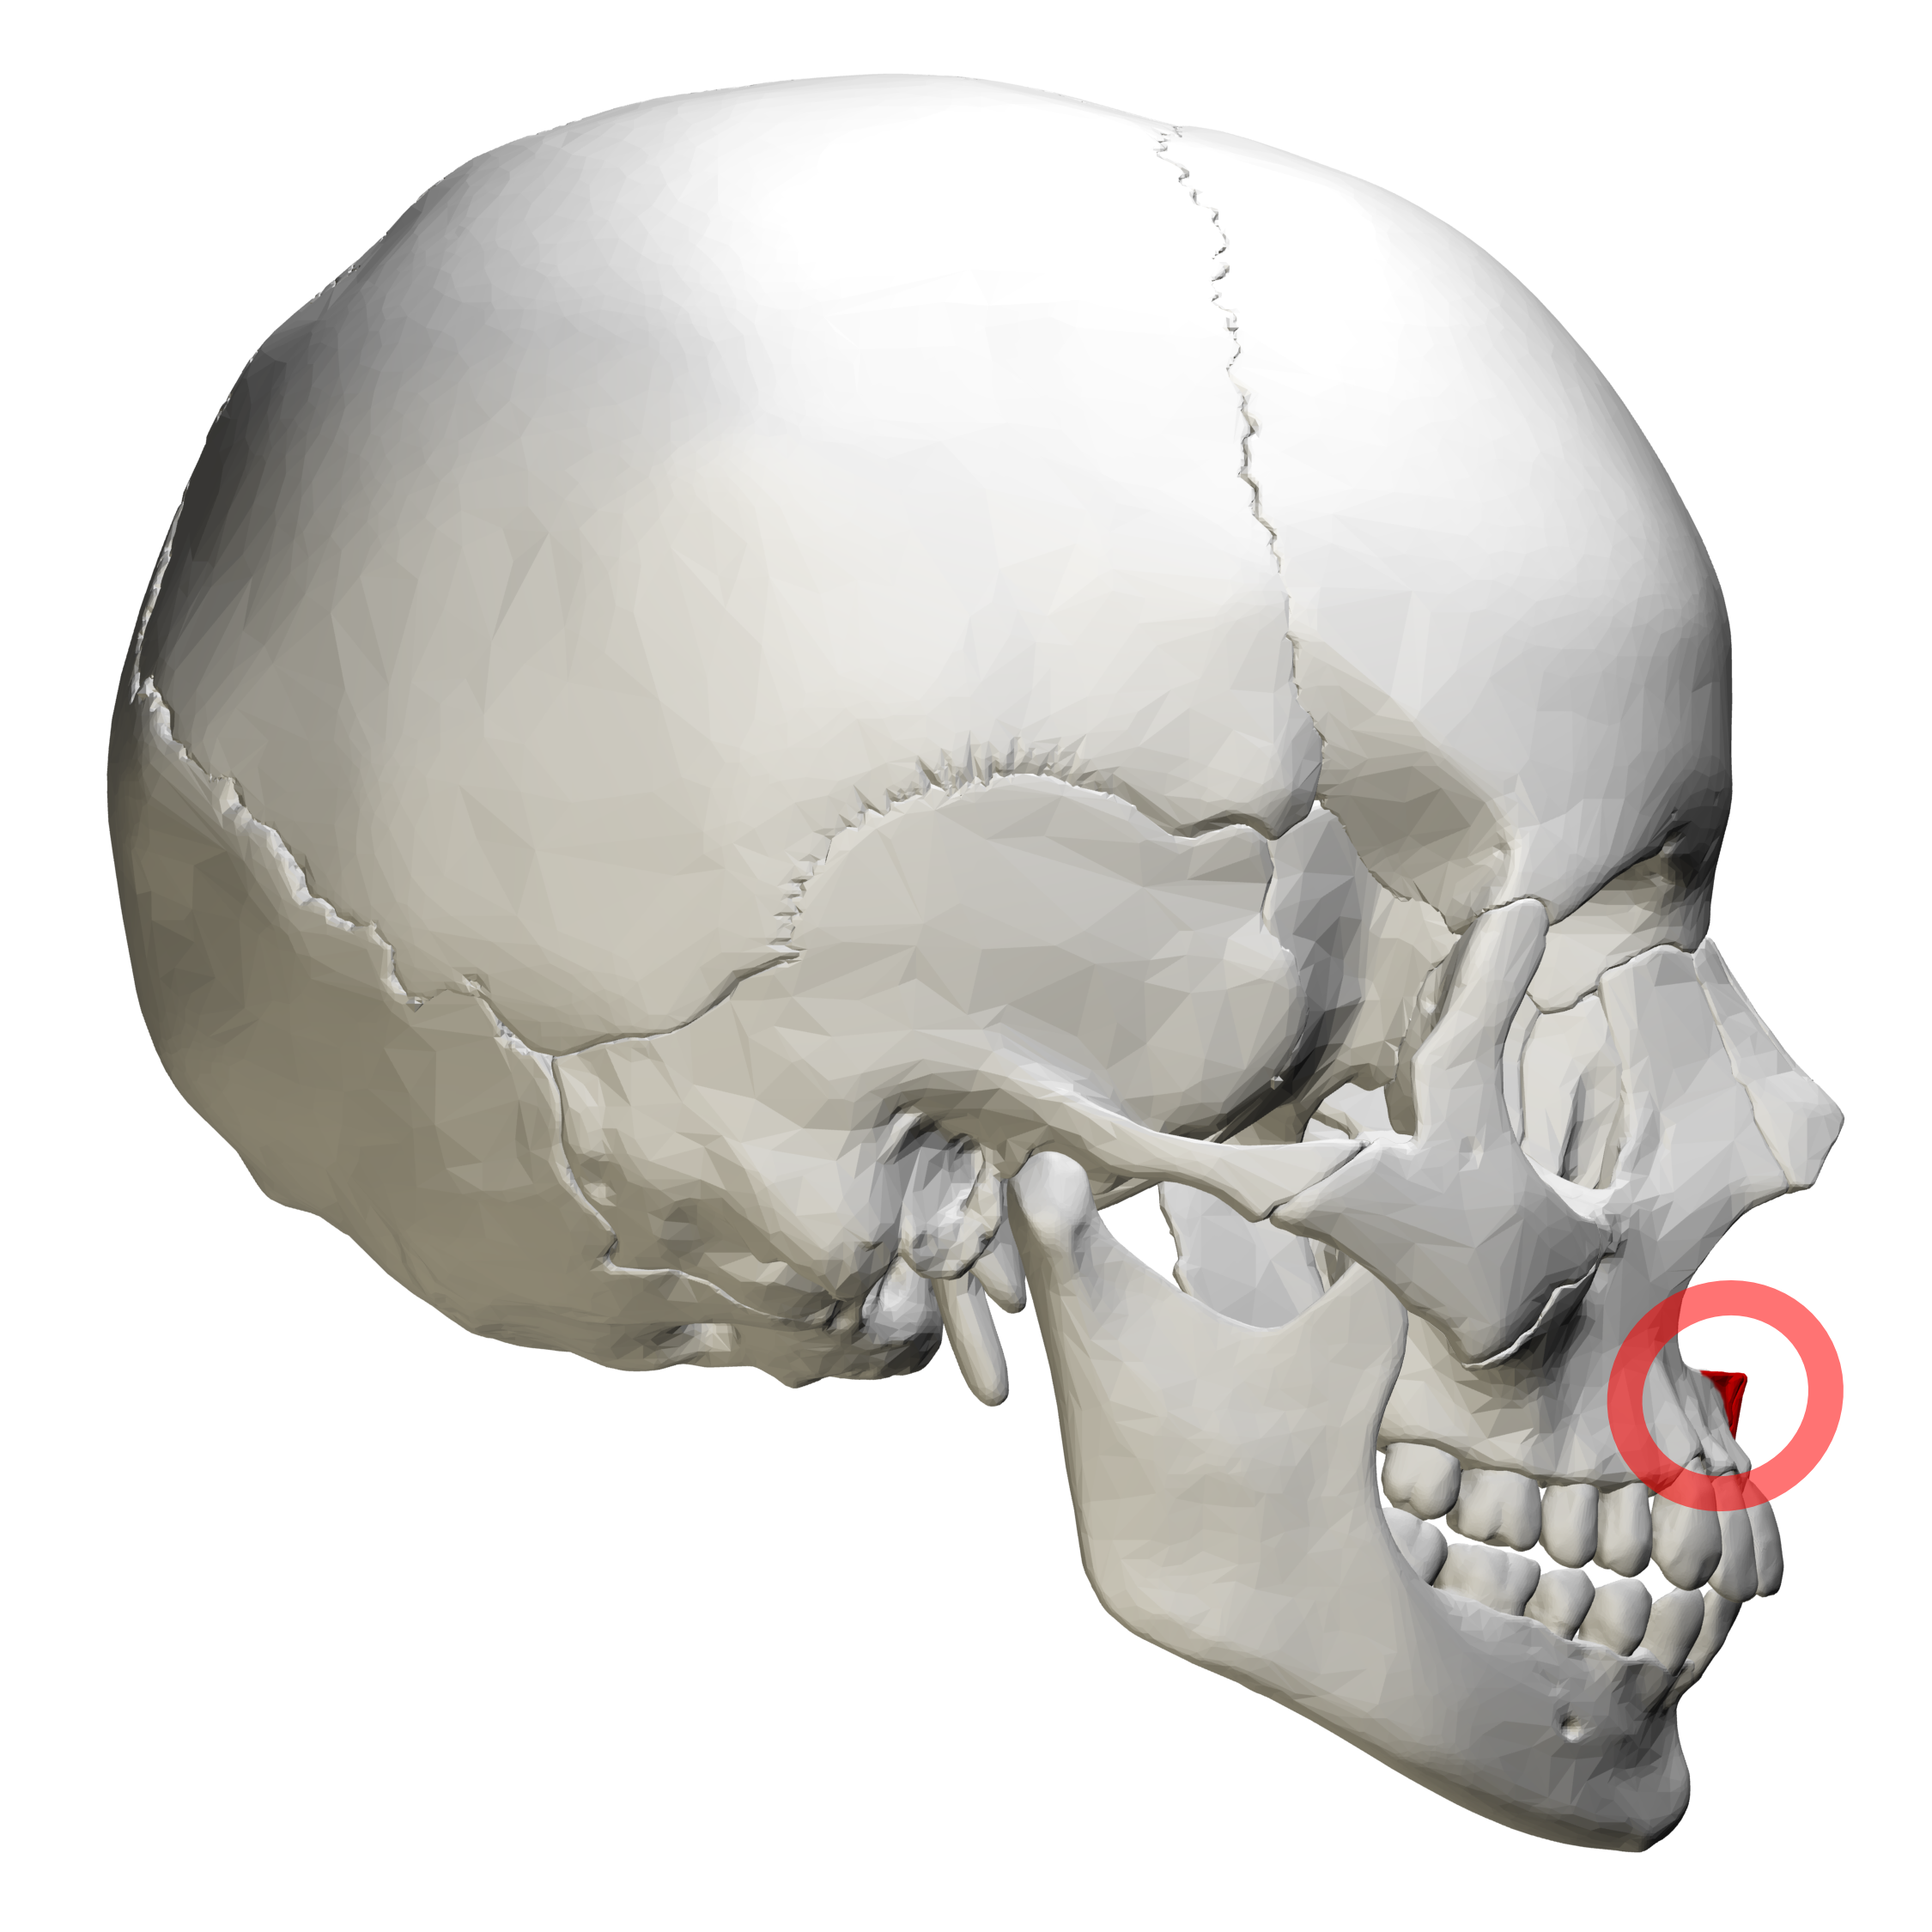 File:Anterior nasal spine of maxilla - skull - lateral view with ...